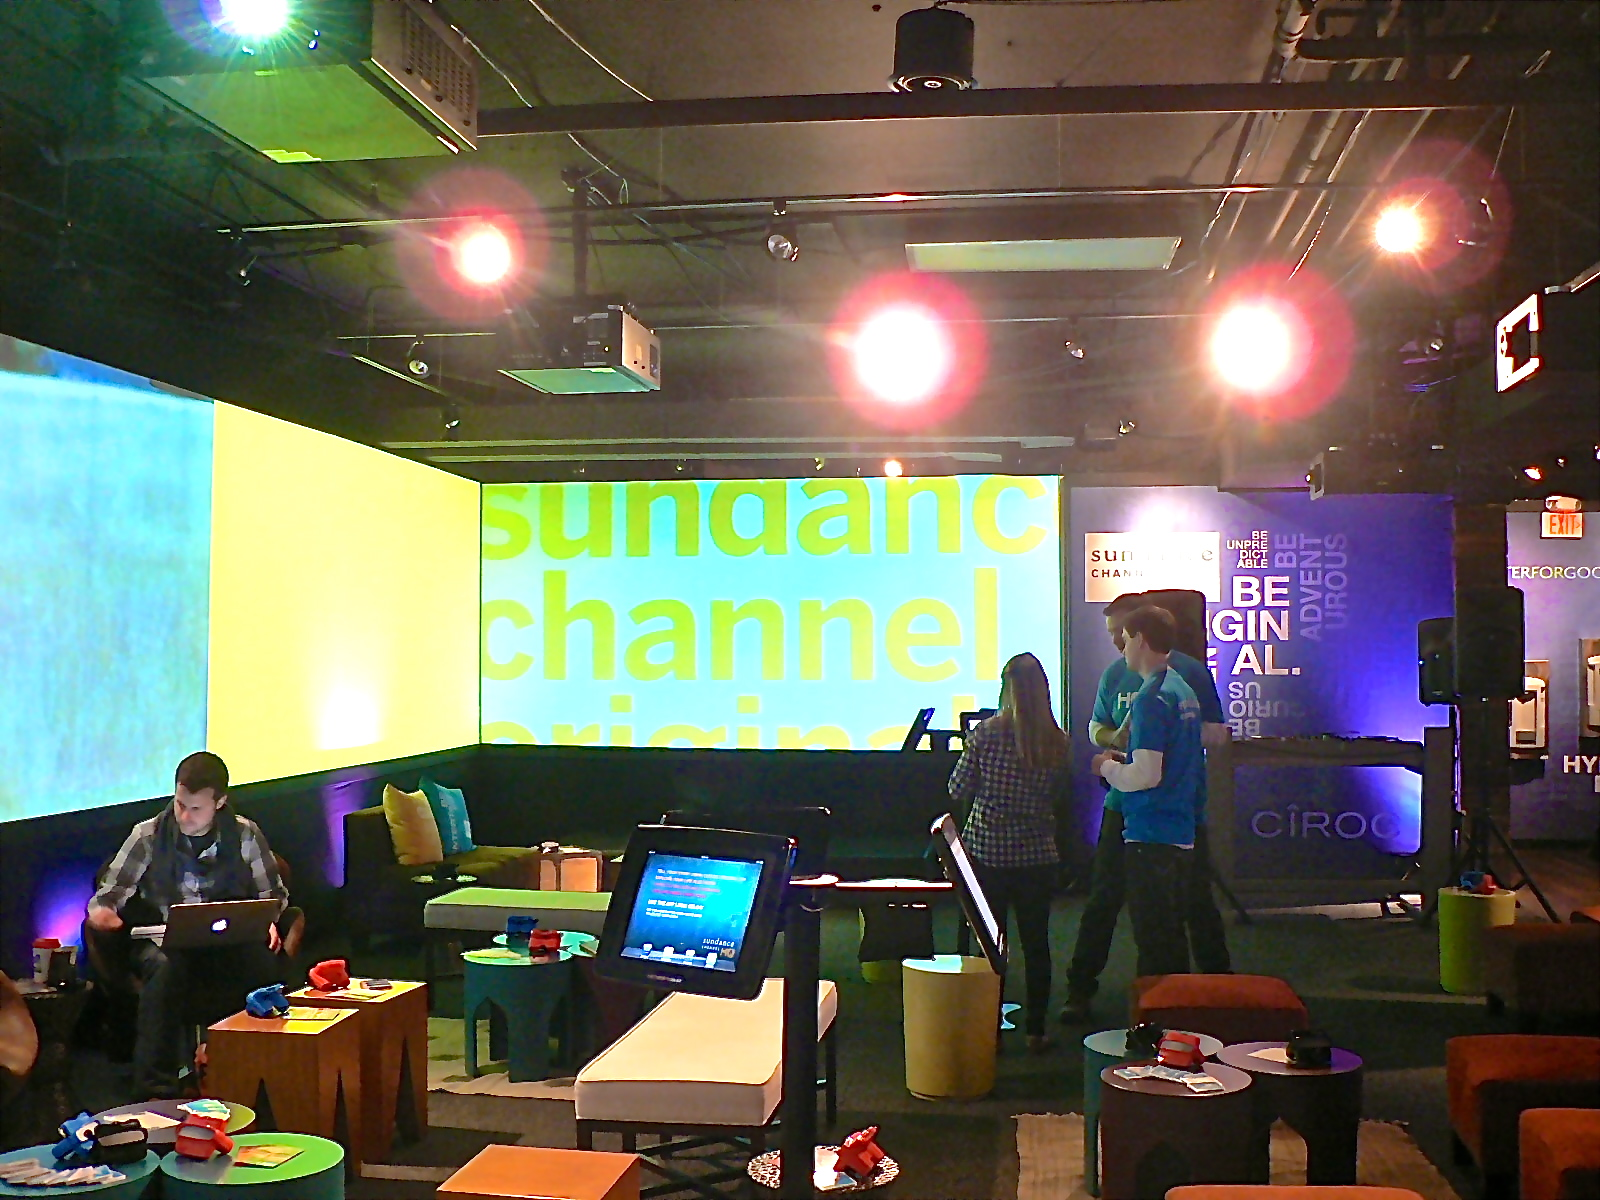 The Sundance Channel HQ is a creative hive during the 2013 Sundance Film Festival